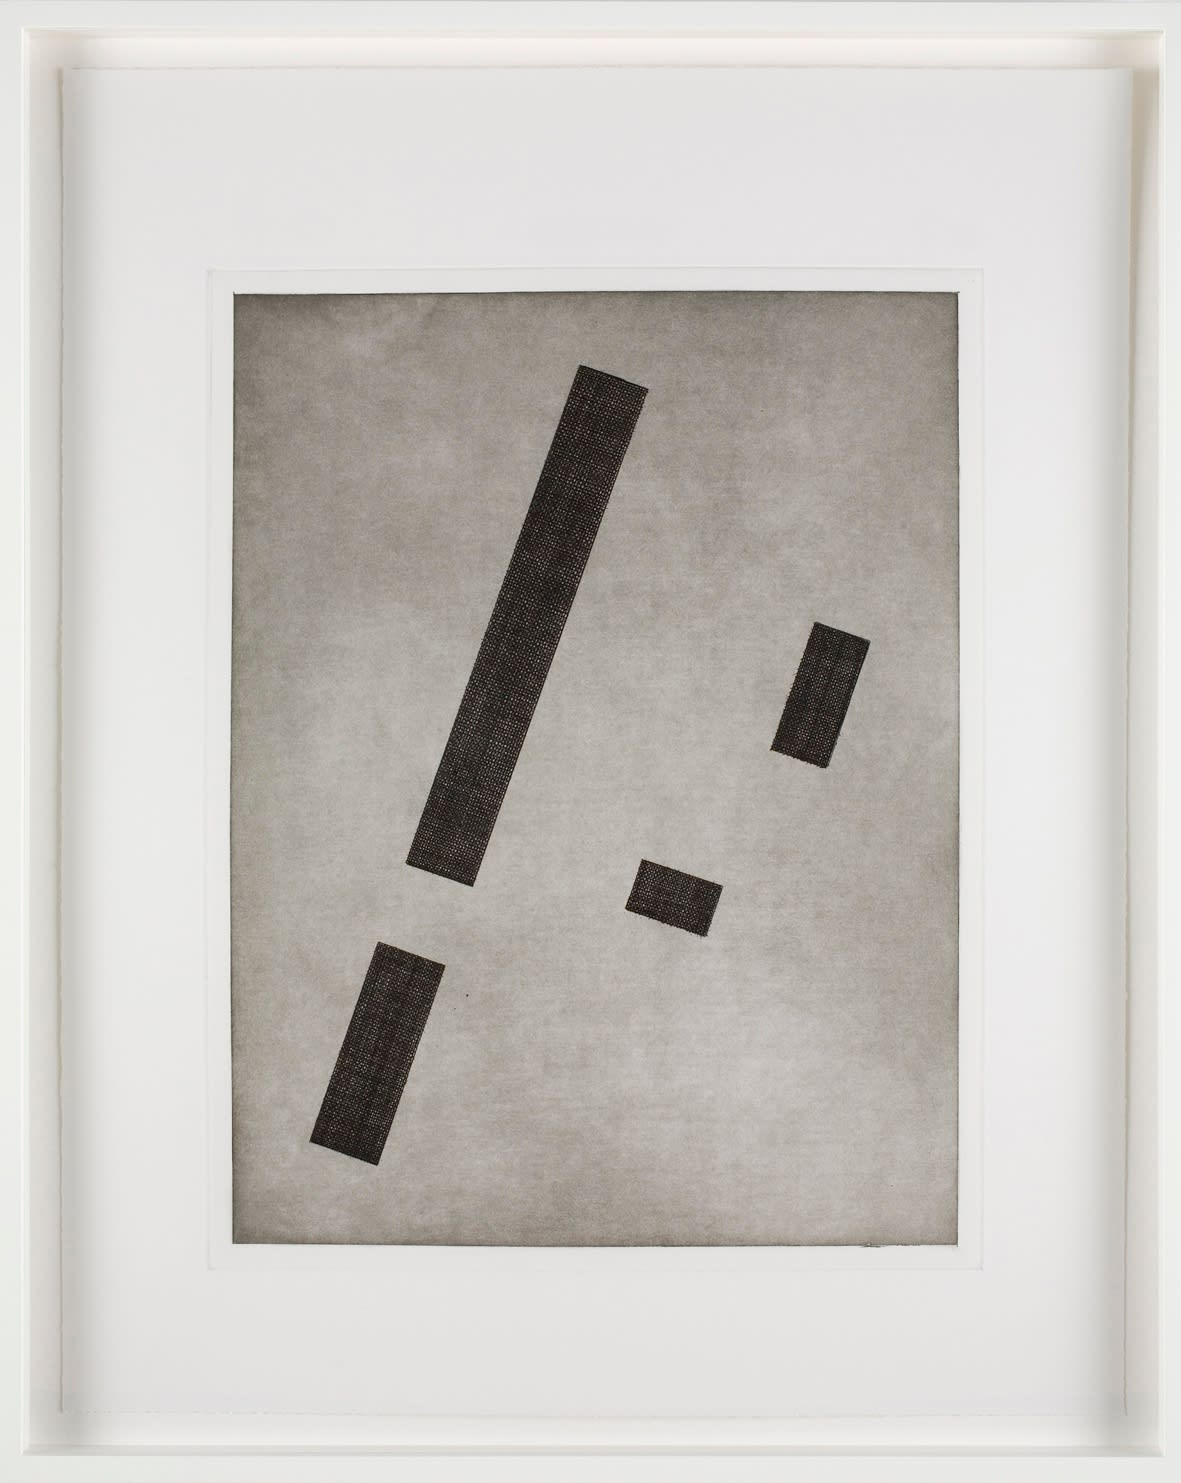 Keith Coventry Simmons Estate, 2008 Etching on Somerset 300gsm Signed, Titled and Numbered 61 x 48.5 cm Edition of 50